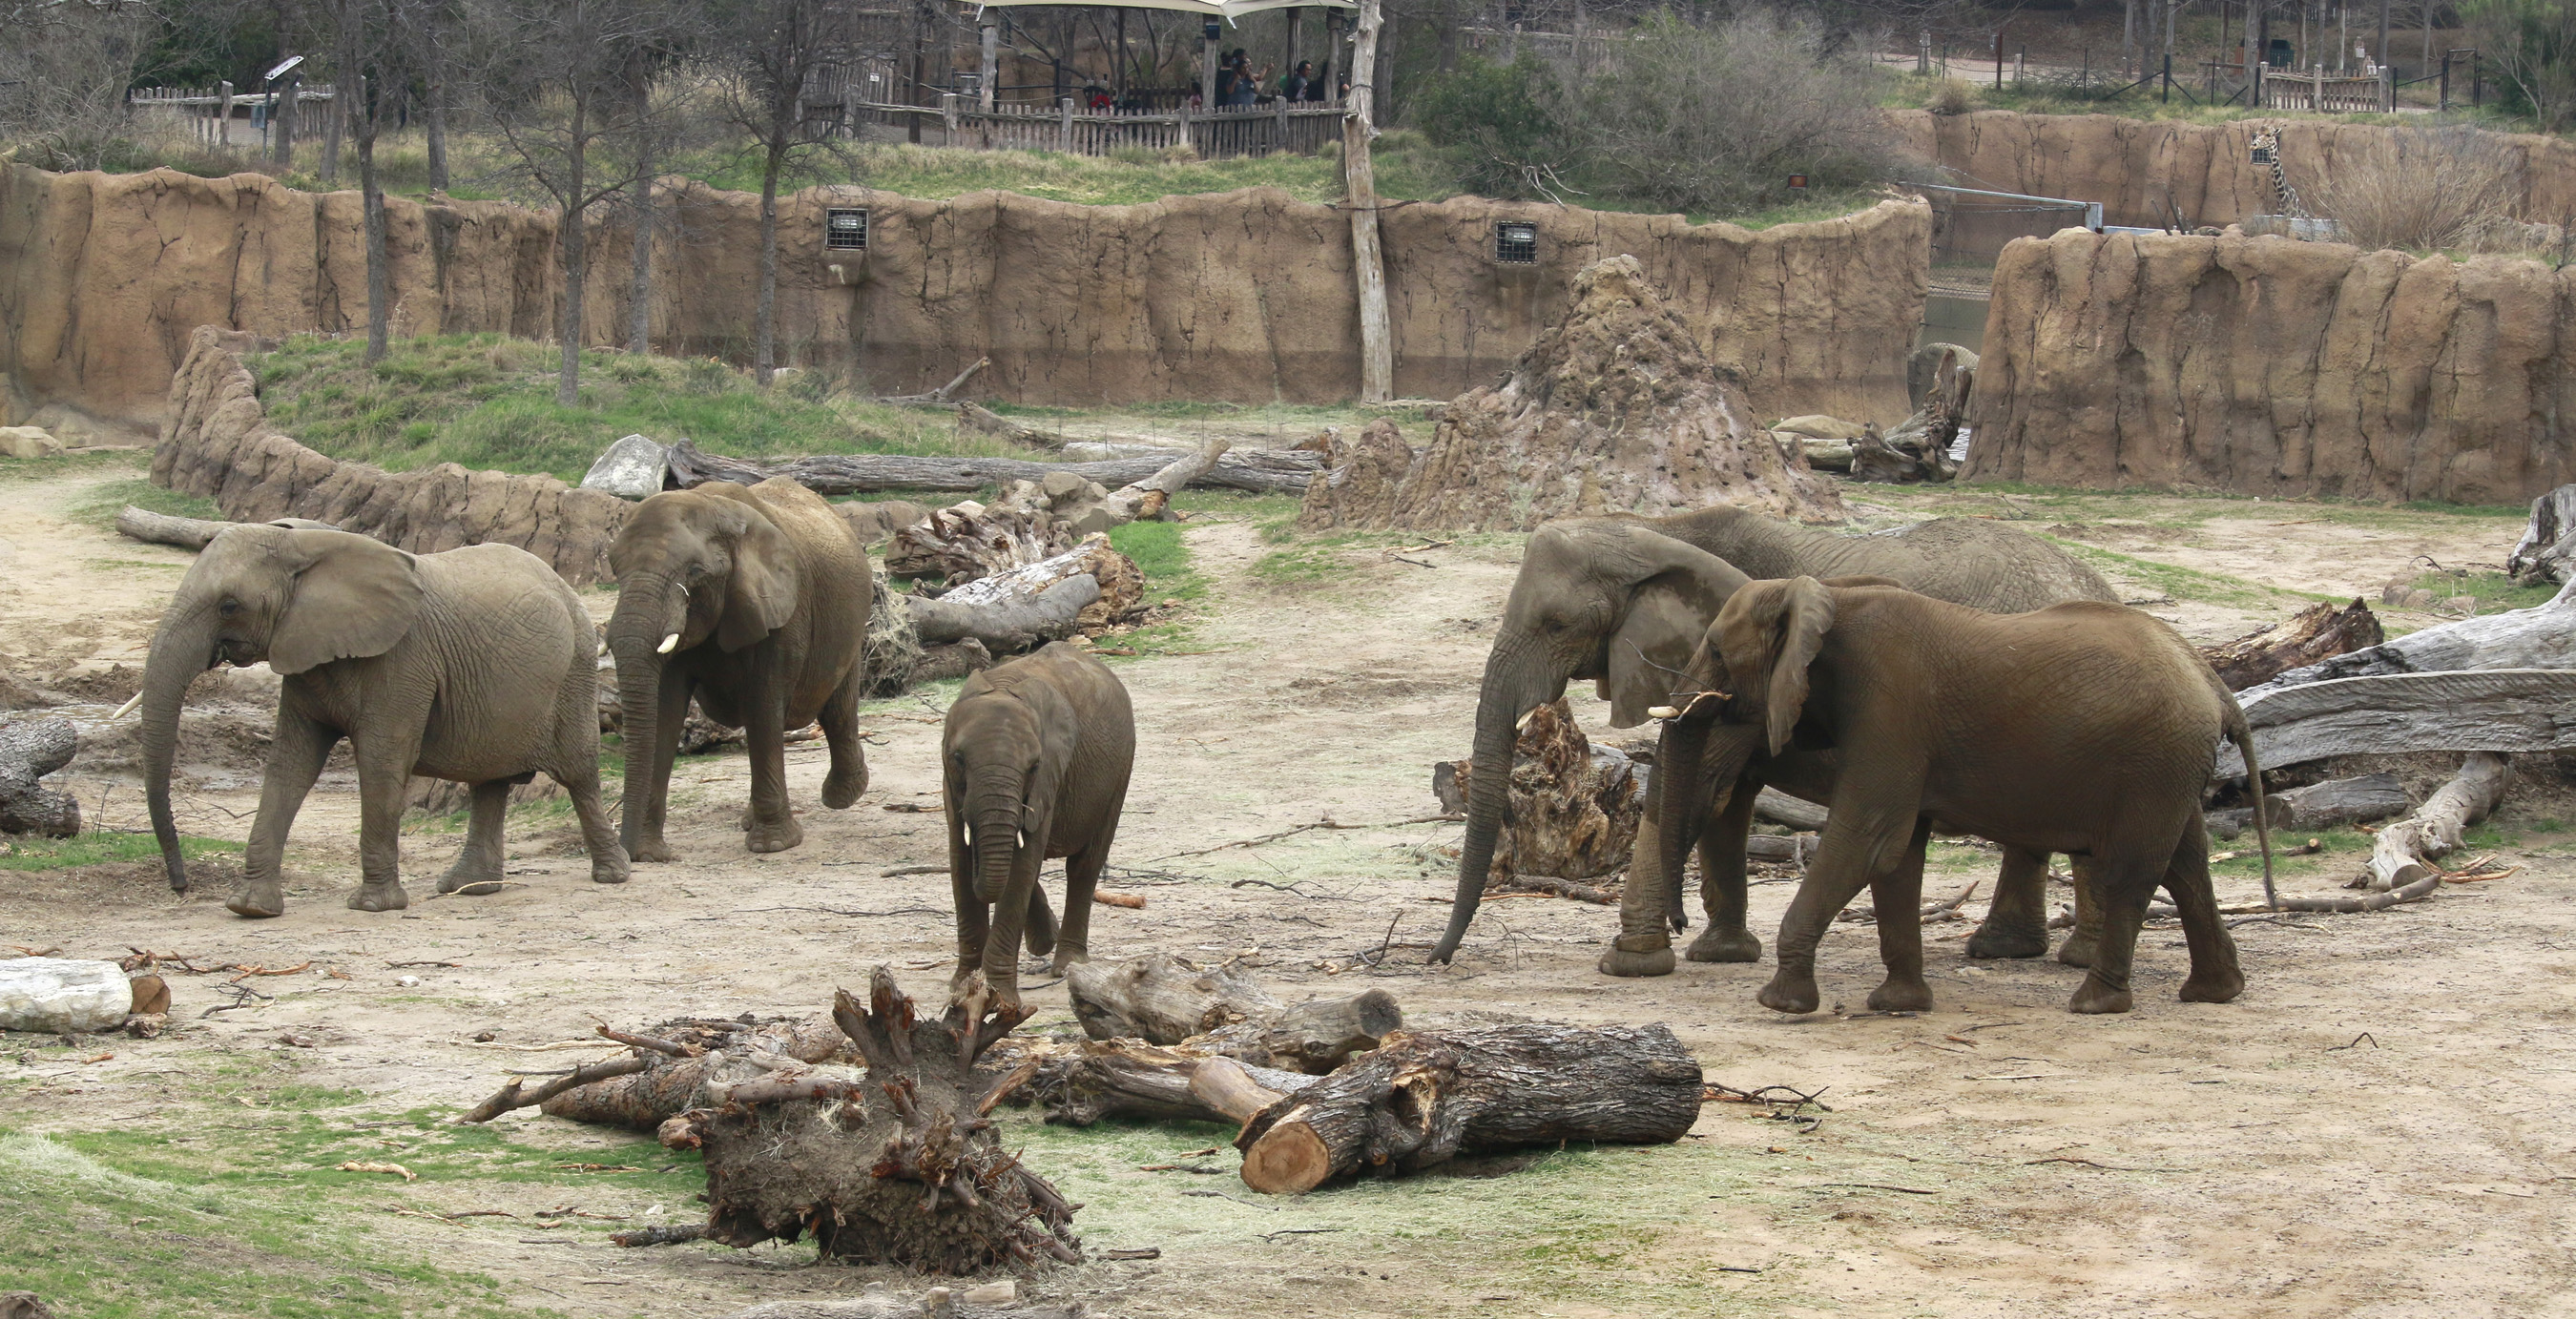 The elephants gather on the Savanna.